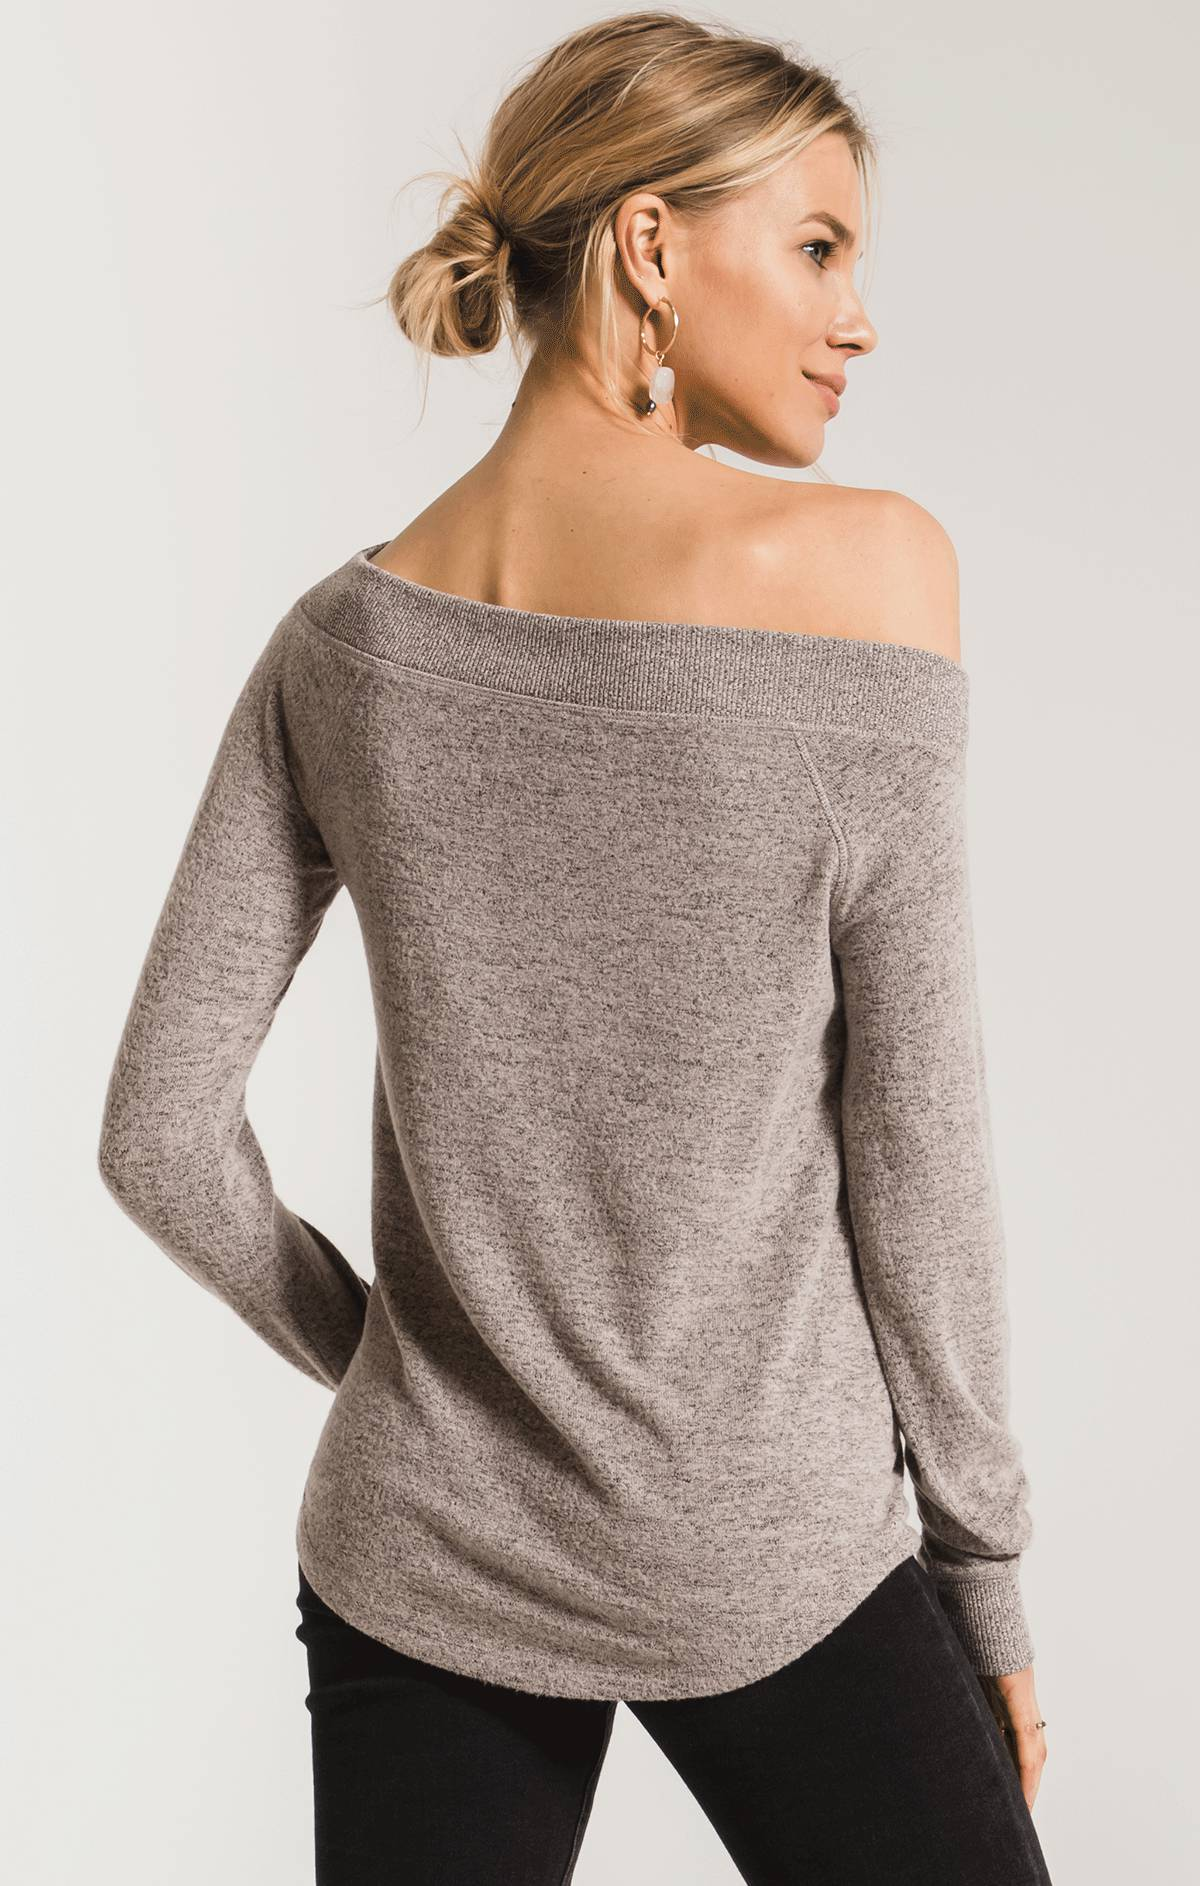 Tops The Marled Sweater Knit One Shoulder Top Mushroom